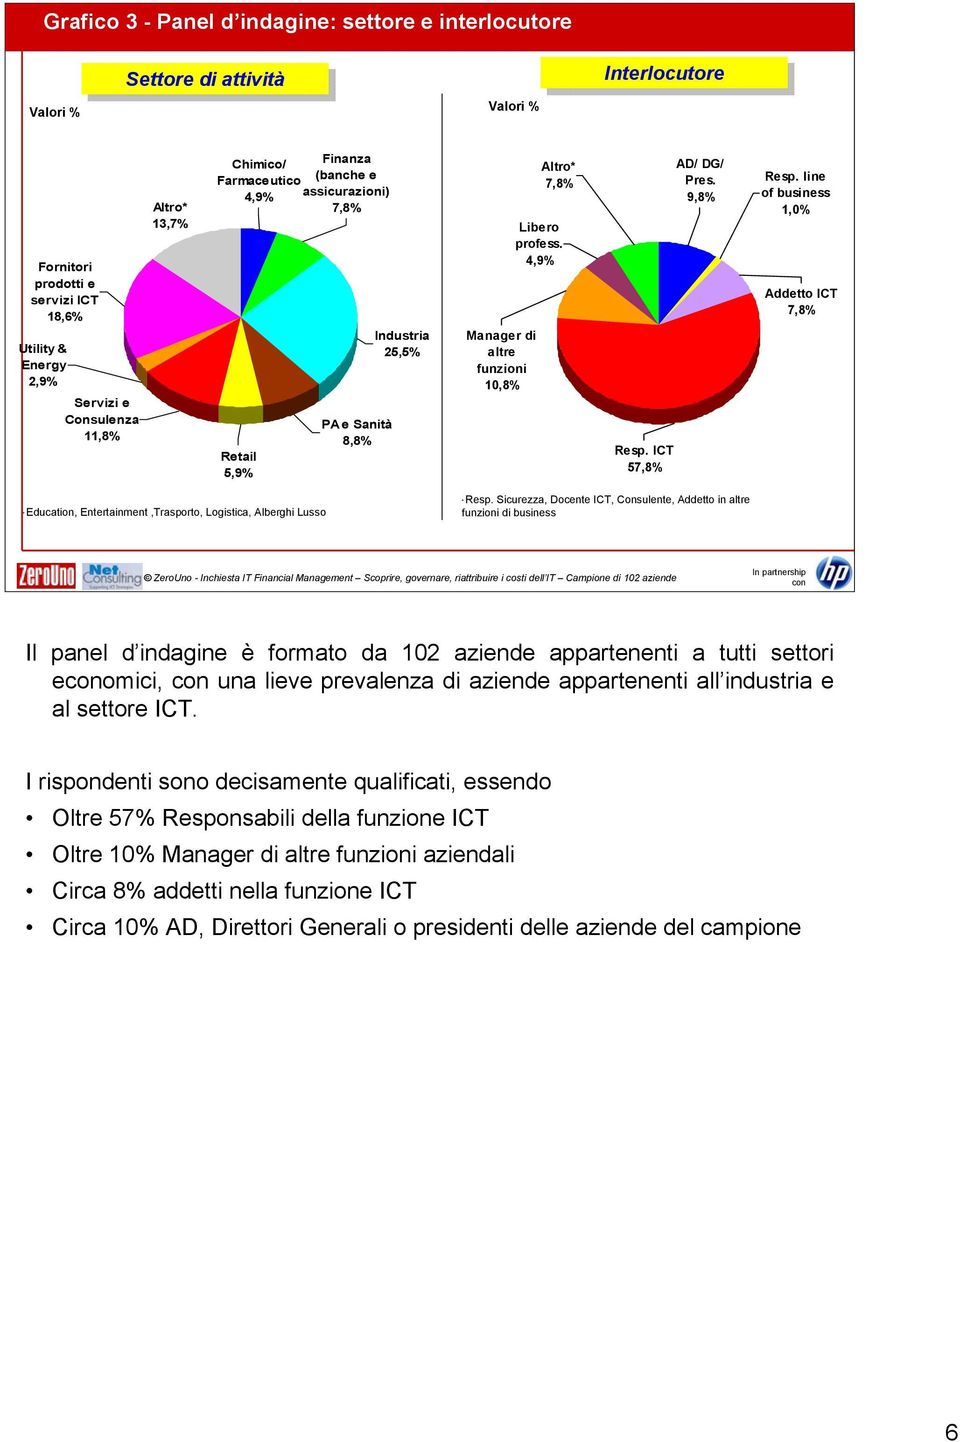 ICT 57,8% AD/ DG/ Pres. 9,8% Resp. line of business 1,0% Addetto ICT 7,8% * Education, Entertainment,Trasporto, Logistica, Alberghi Lusso * Resp.